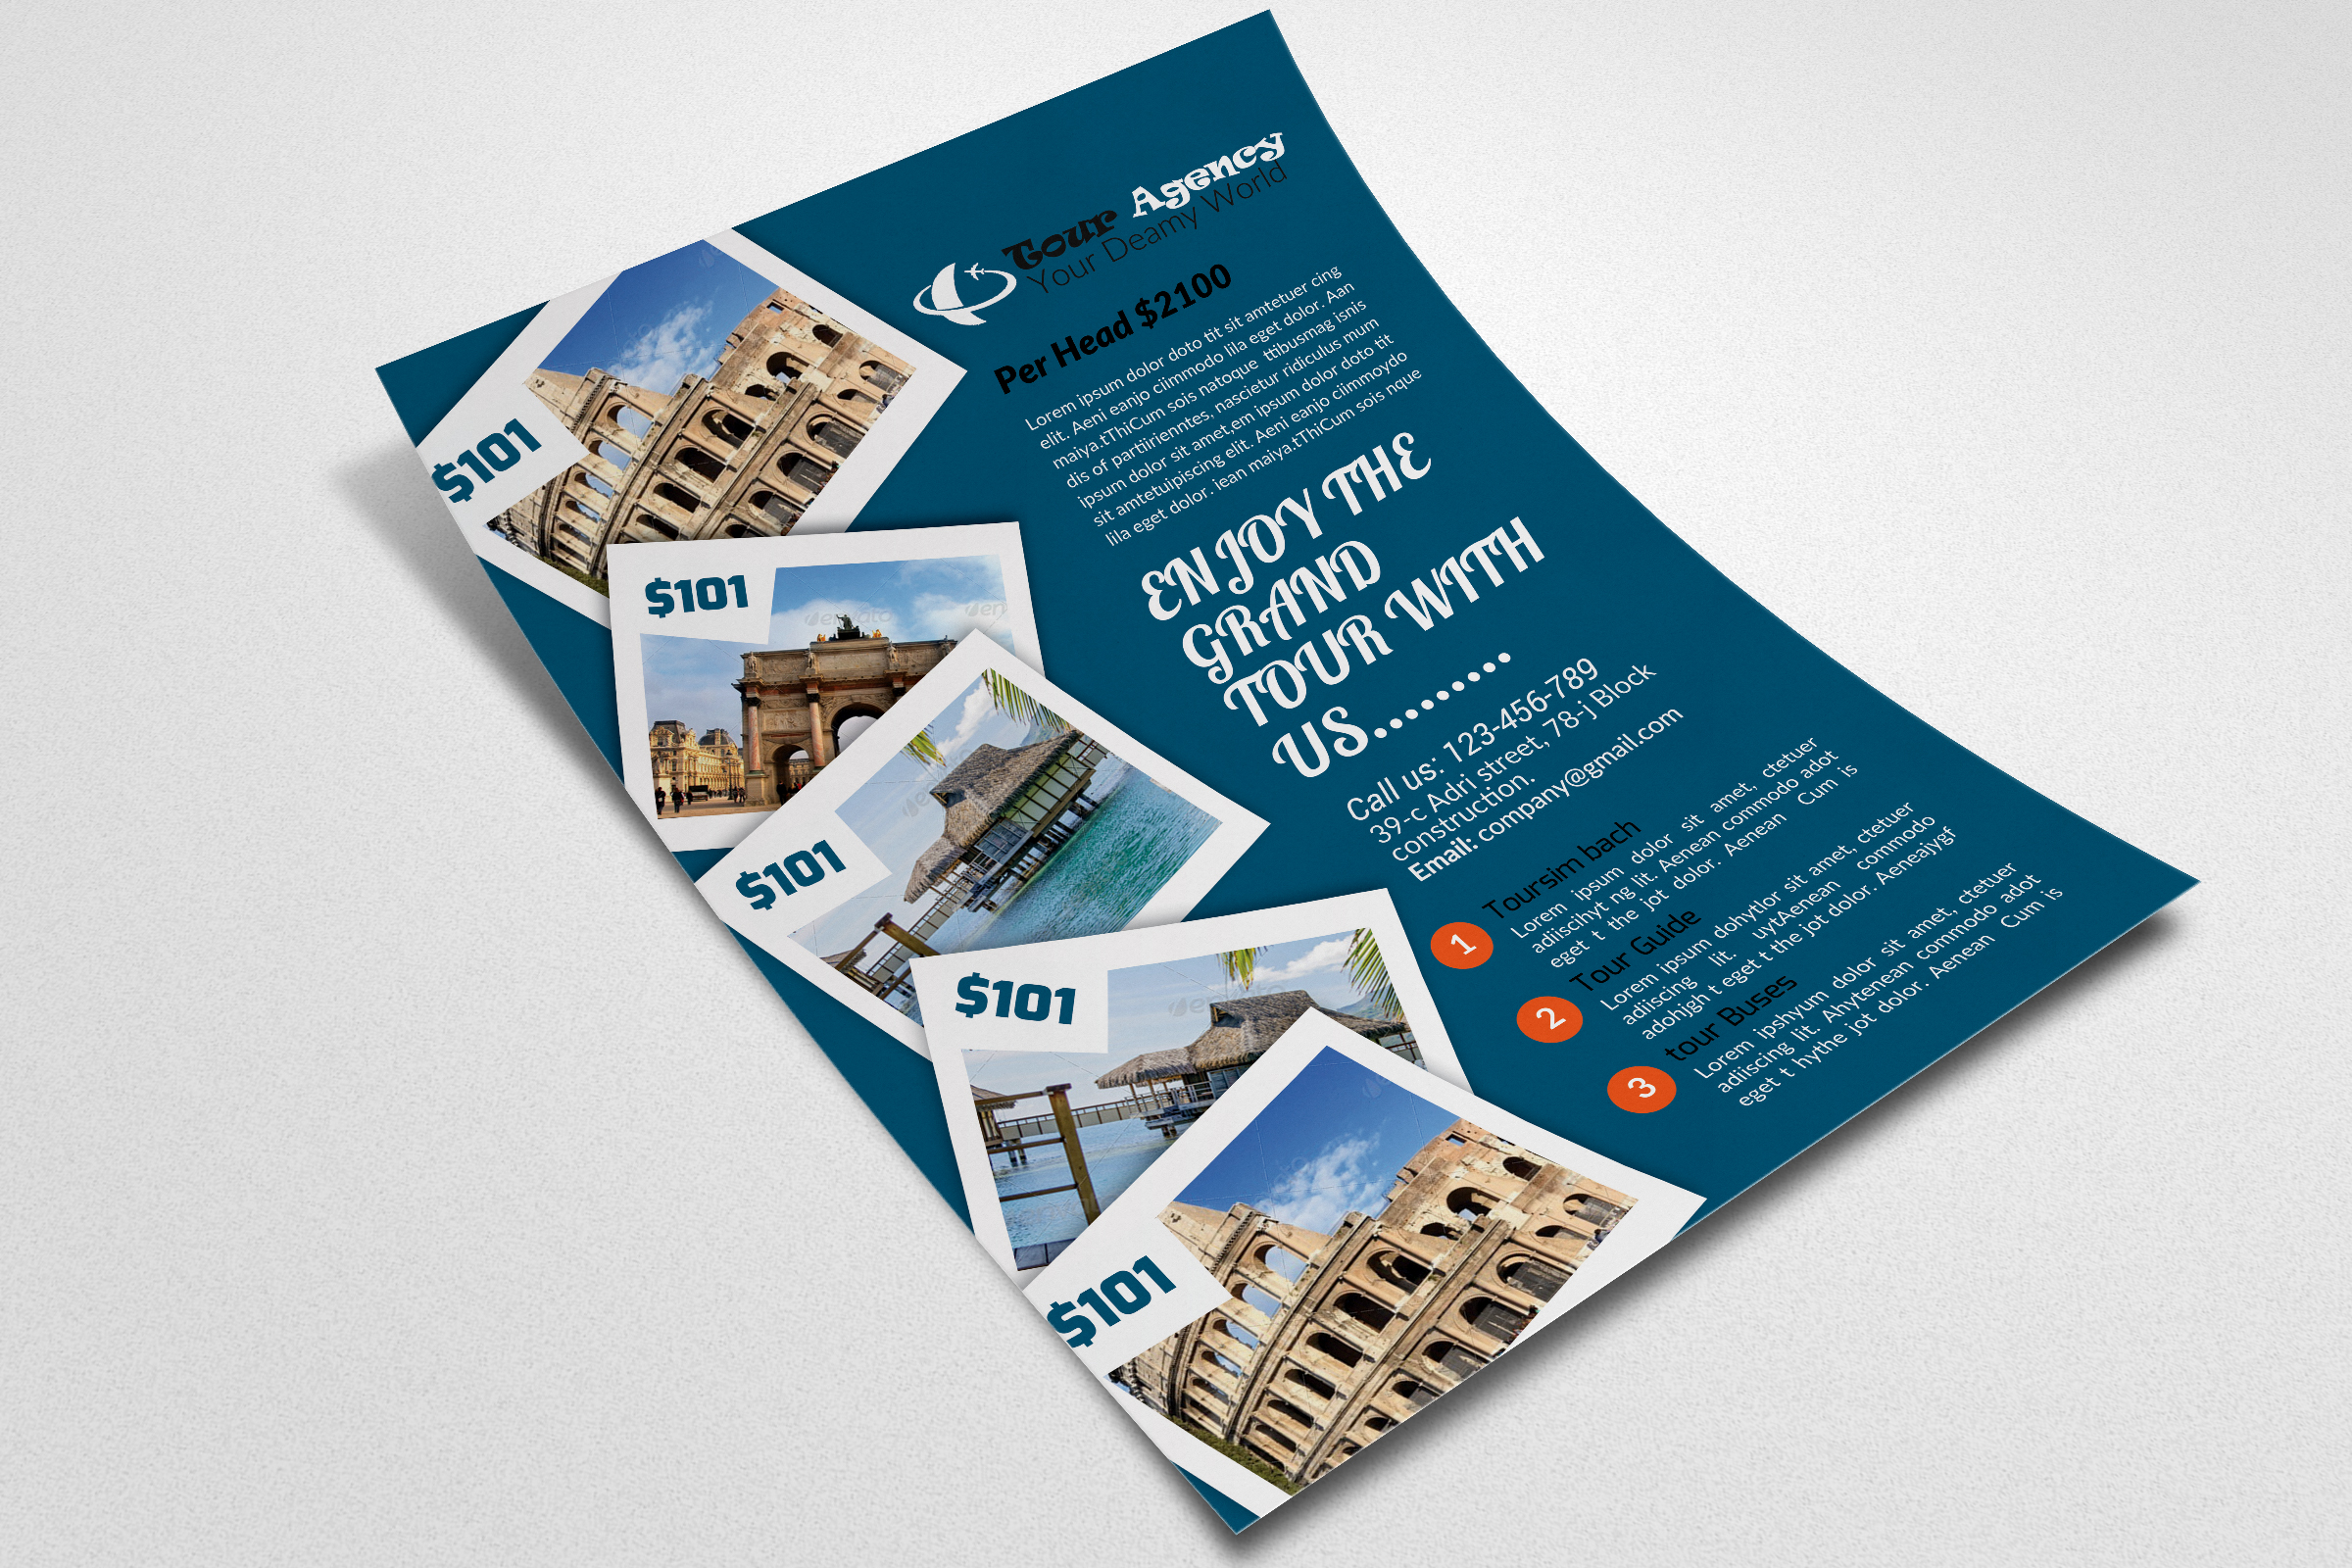 Tour & Travel Flyer Psd example image 3